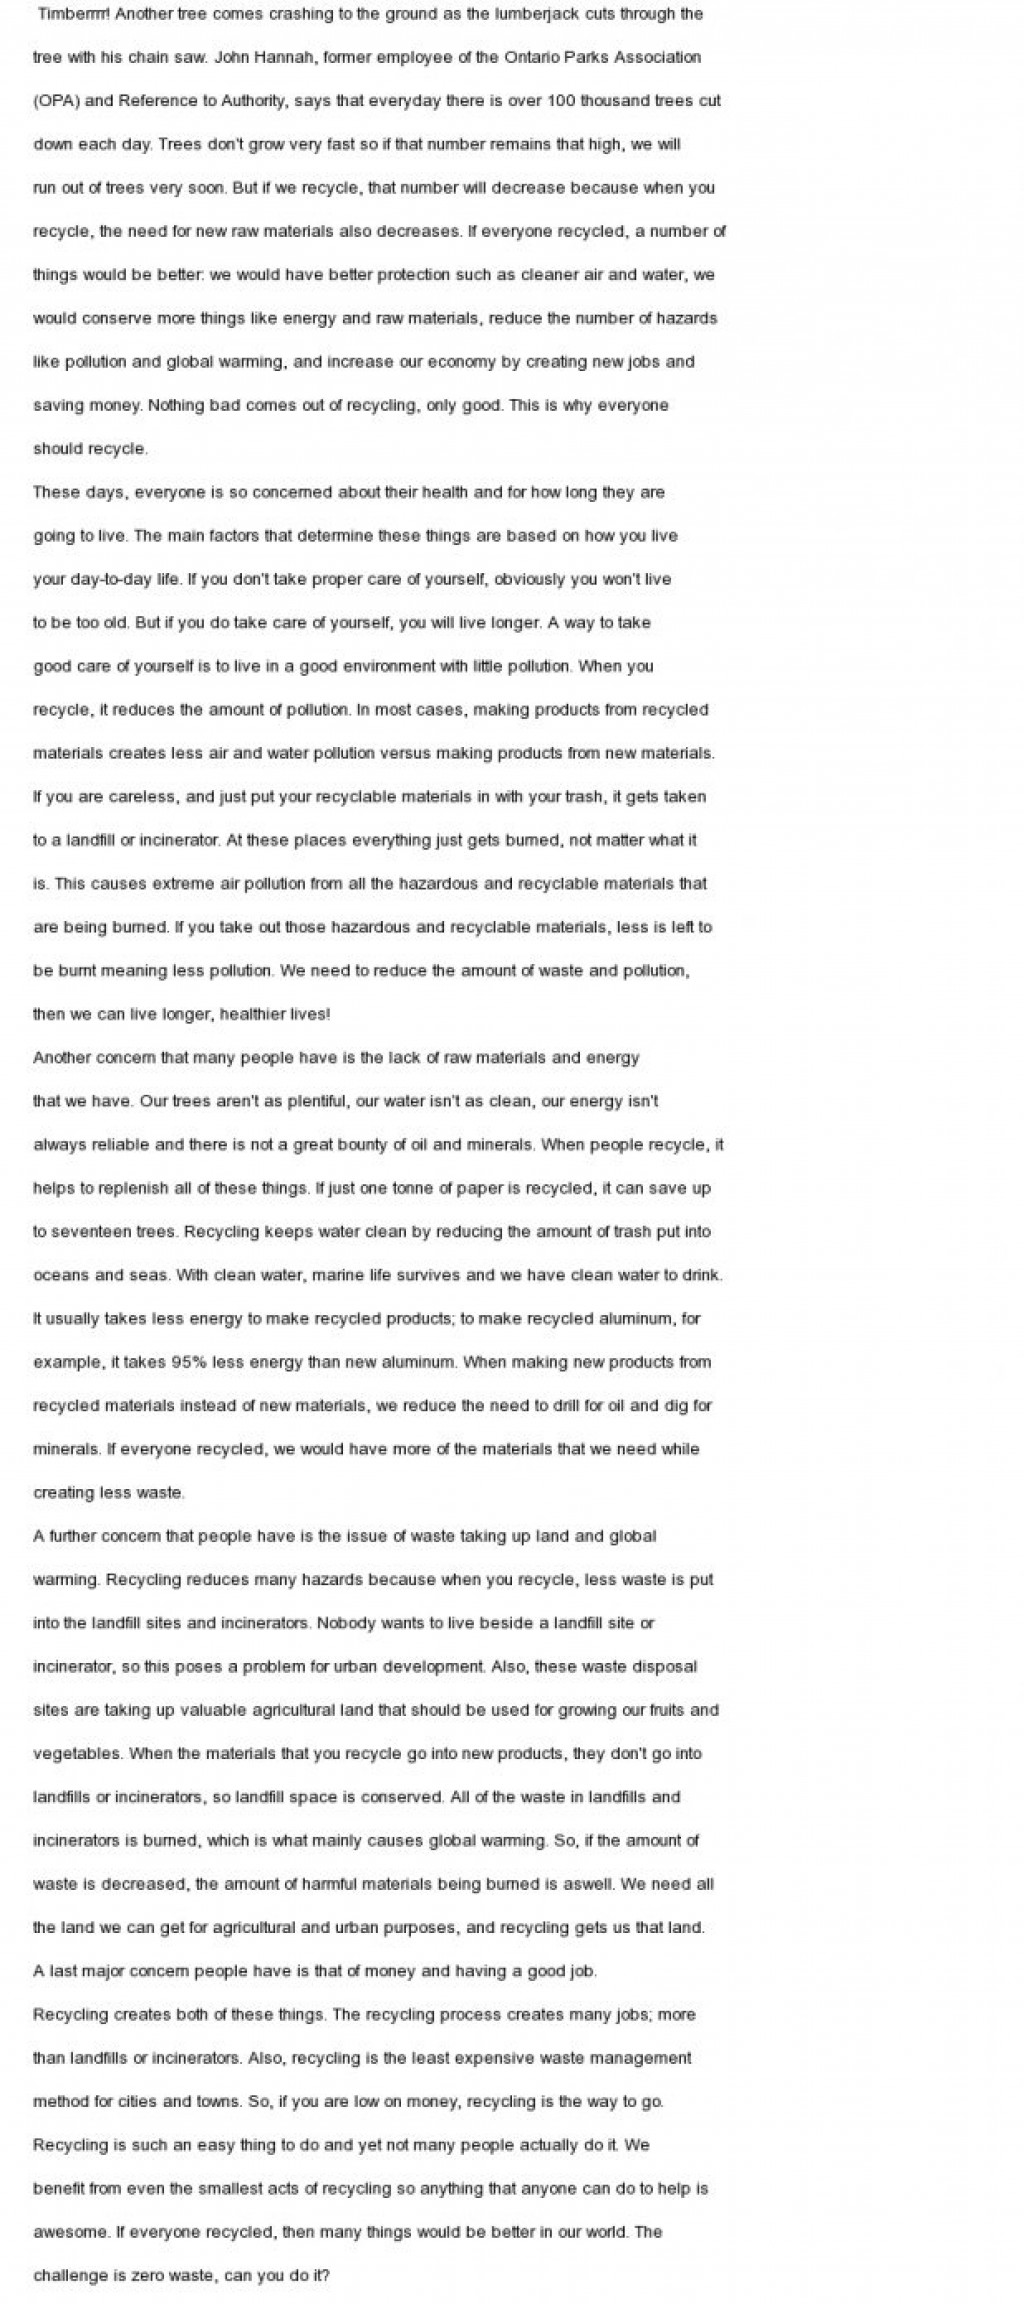 012 Earth Essay Save The Take Challenege Our Planet Writing Can We Pdf Words With Pictures Wikipedia Stop Global Warming Need To 618x1391 Marvelous Day In English Pt3 If Could Speak Marathi On Mother For Class 3 Large